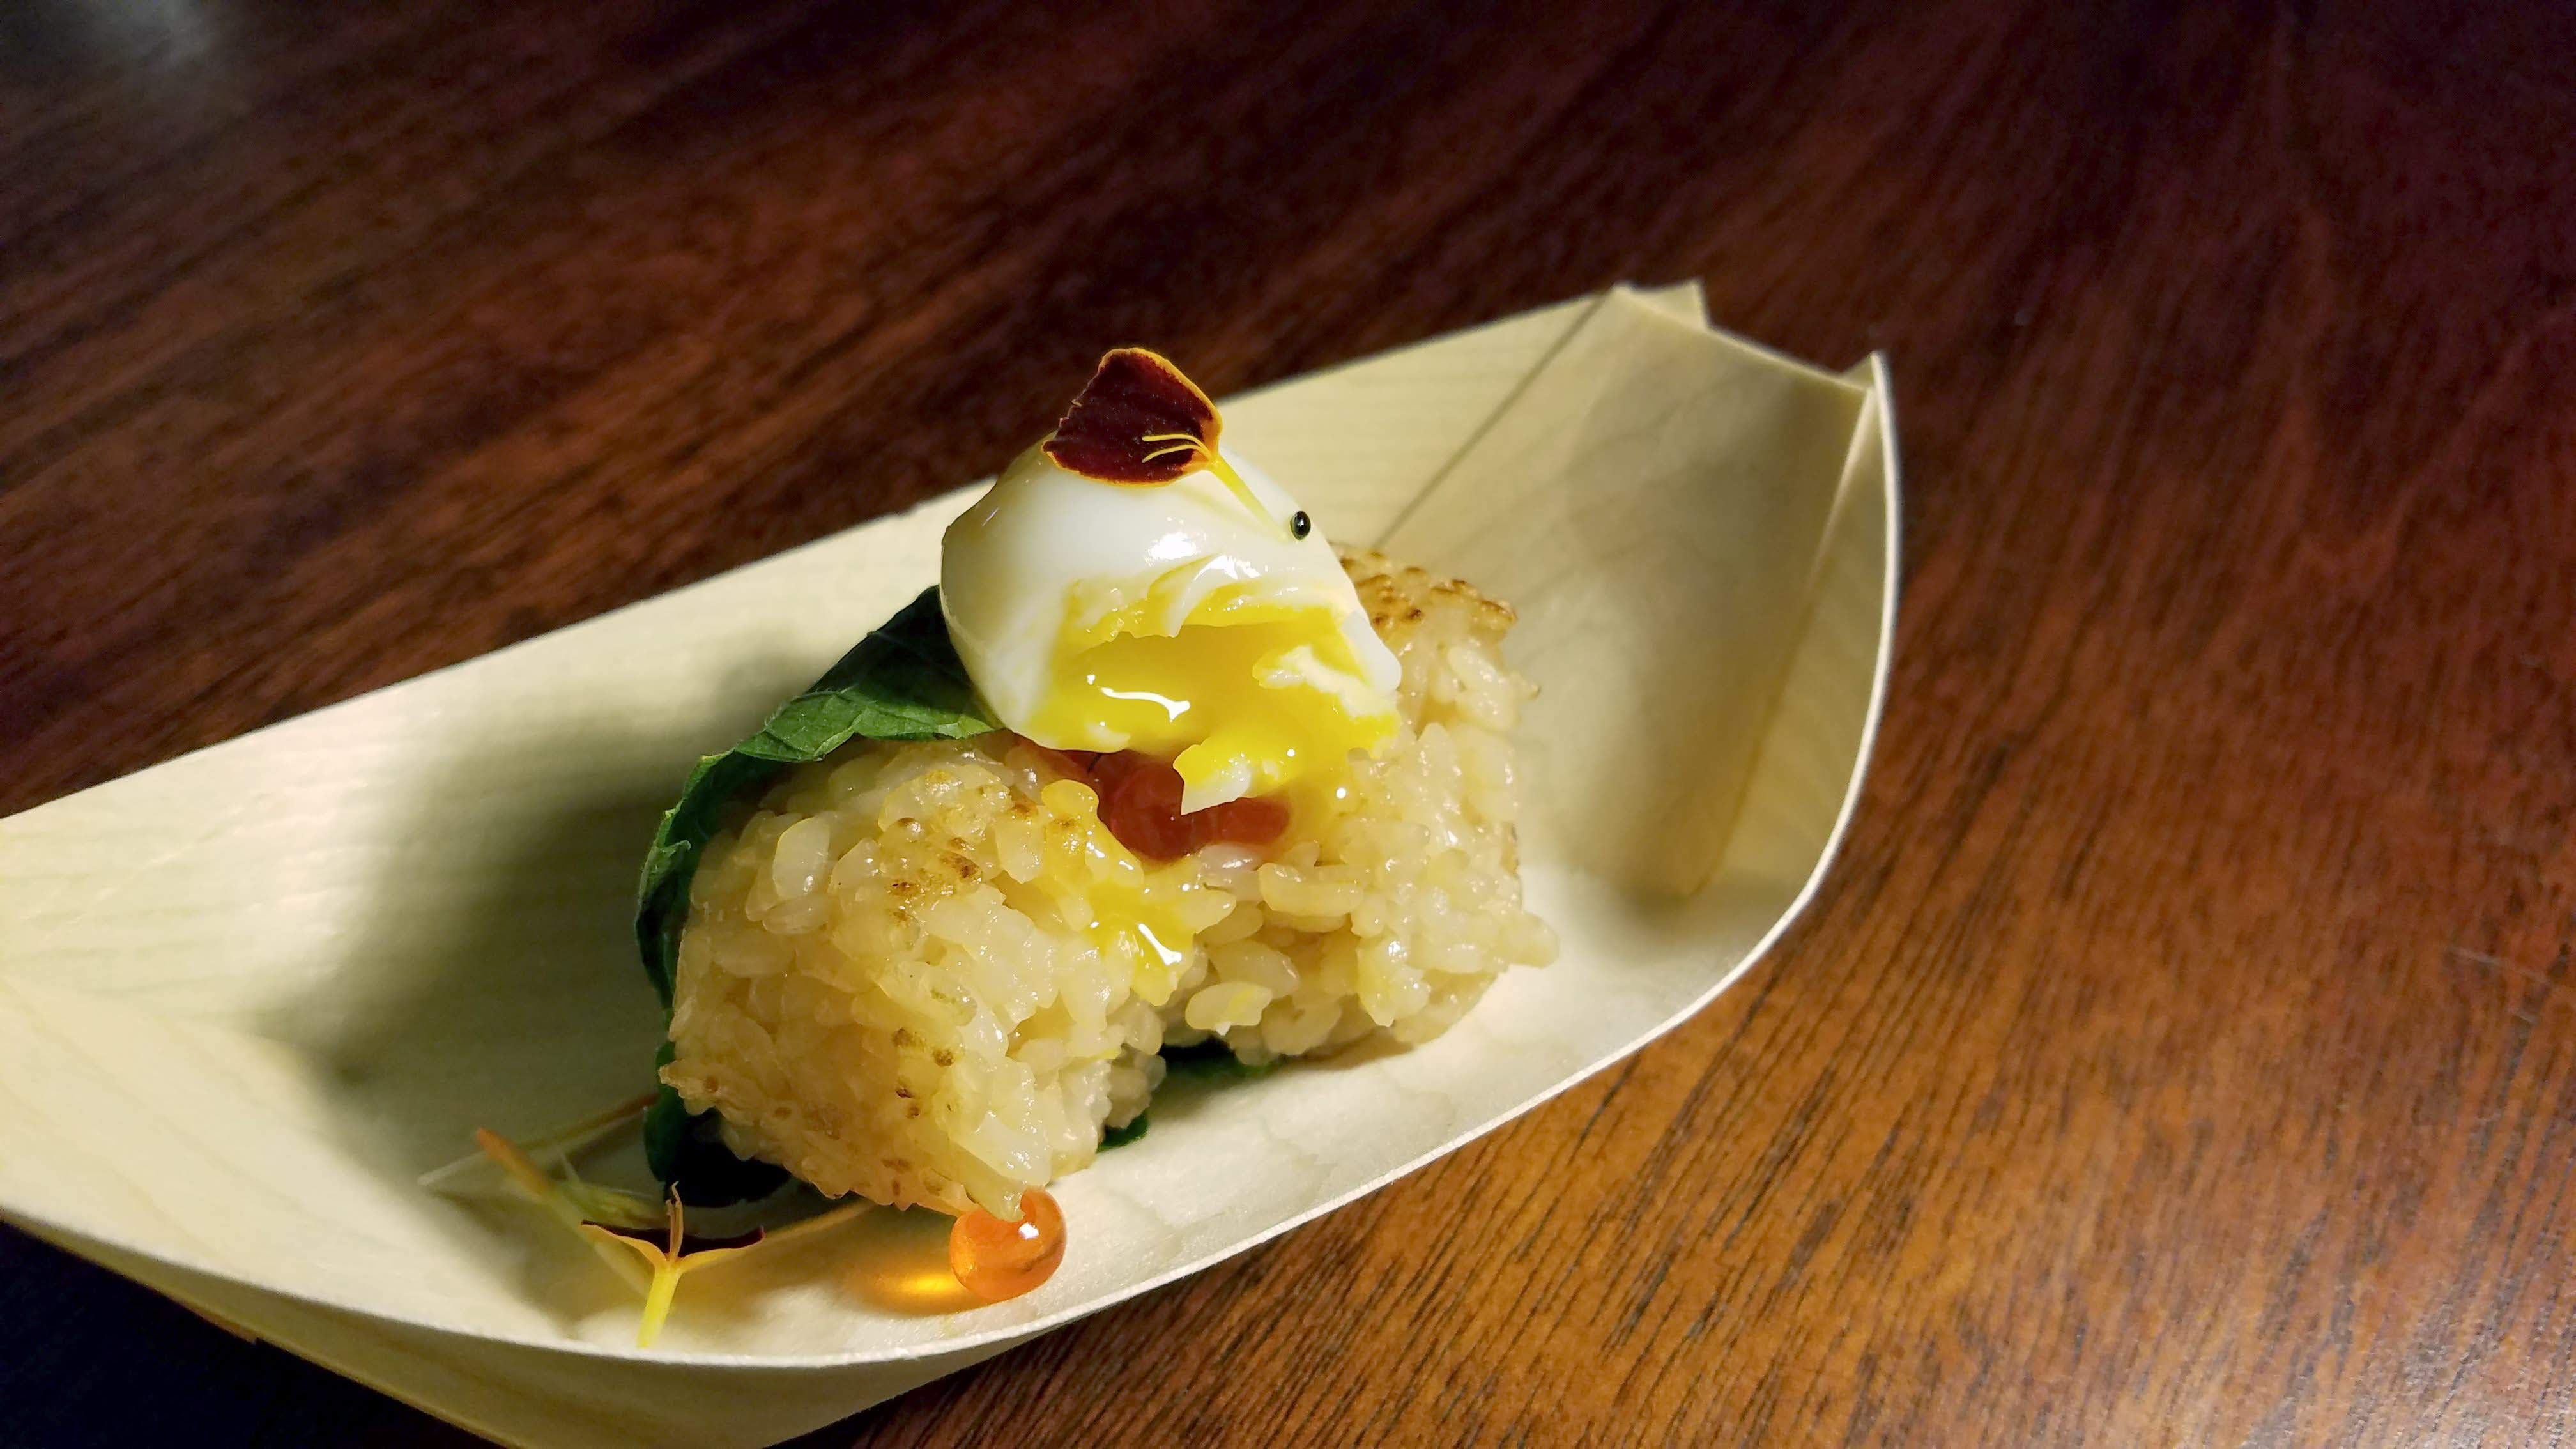 Tanuki's quail egg onigiri —a rice ball topped with an oozing quail egg and some edible flowers and other garnishes